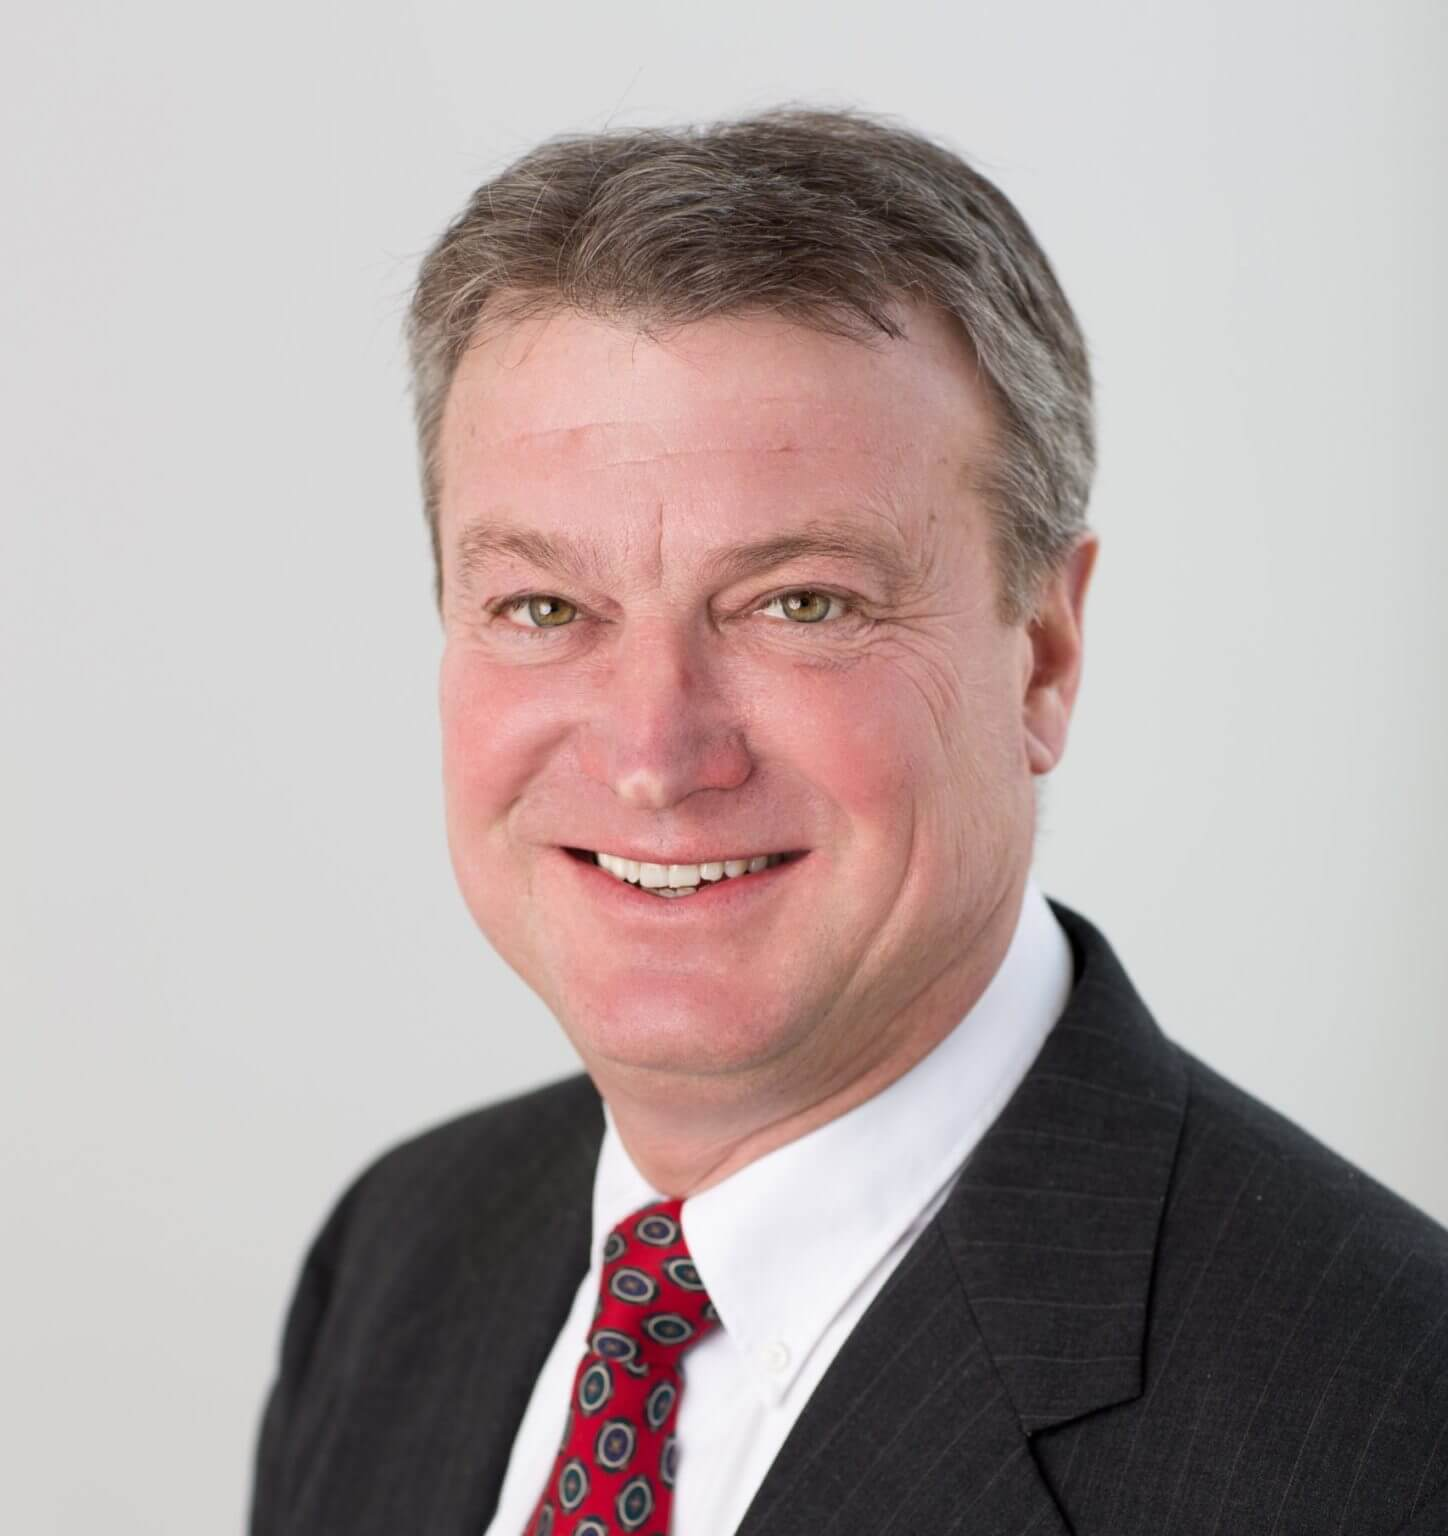 Joel Kitchens is the Assembly Representative to Wisconsin's 1st Assembly district